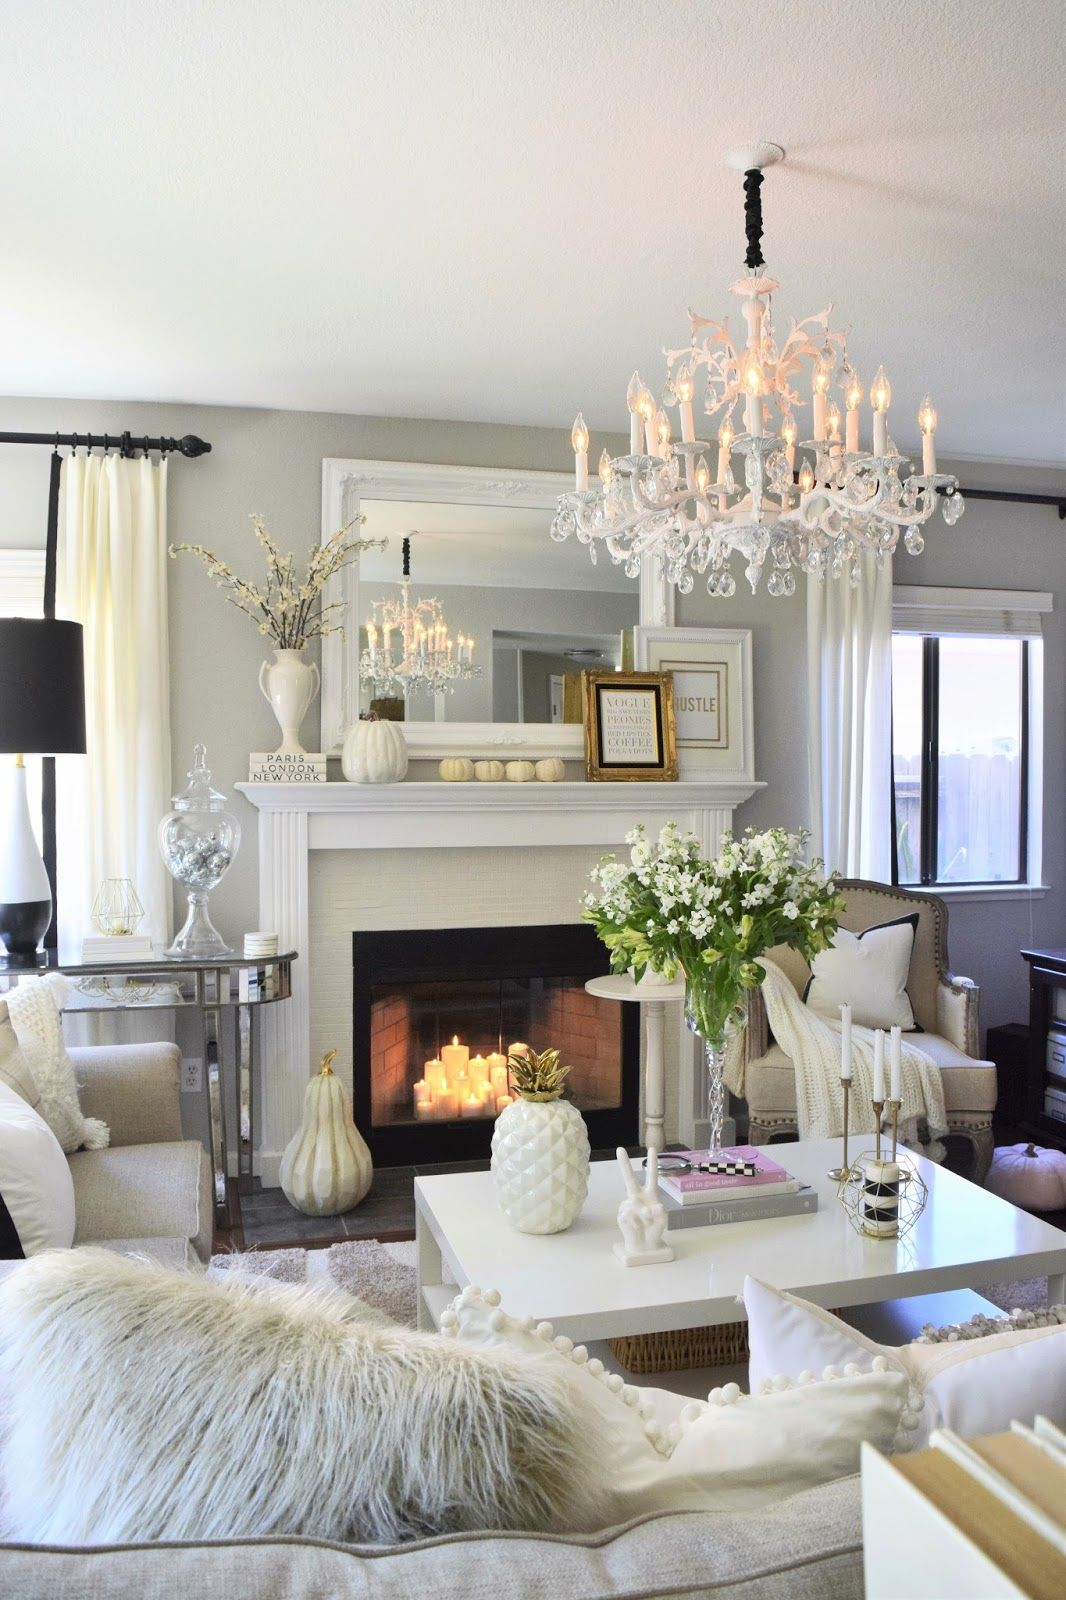 Home Design Ideas Living Room: The Case For Decorating With Neutrals